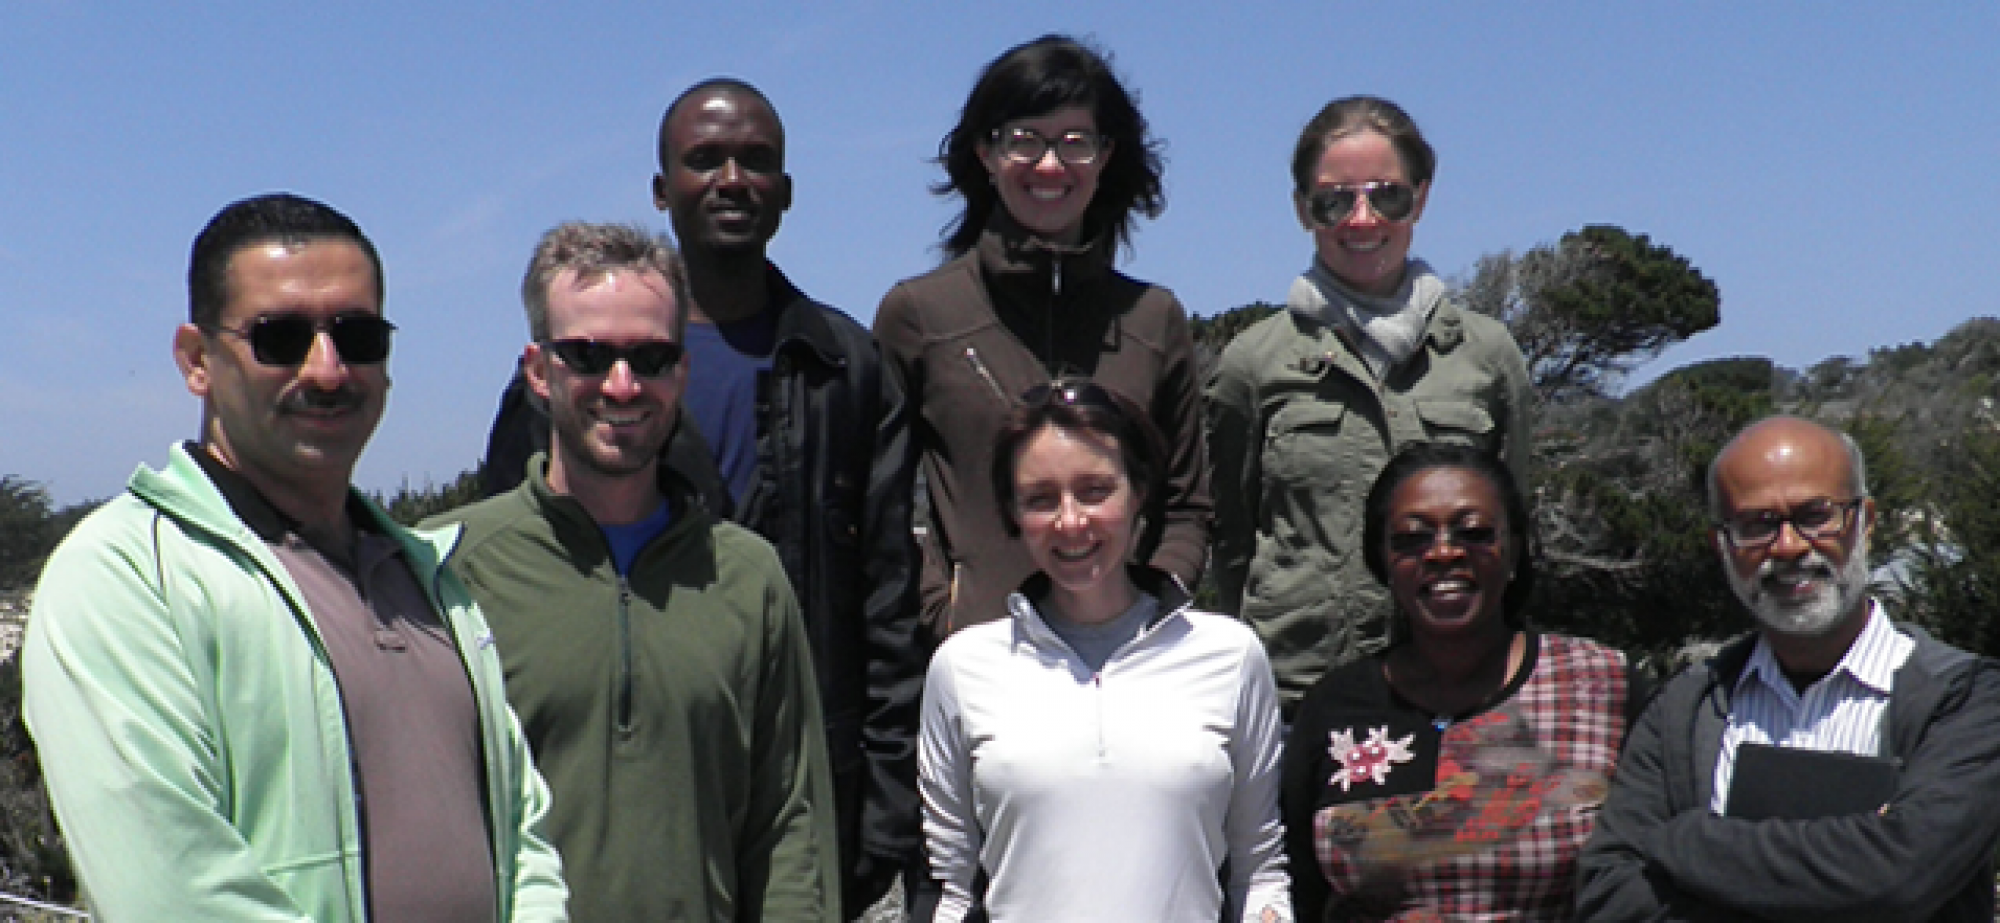 The Housner Fellows meet at their leadership training week in Asilomar, California, in June 2012.